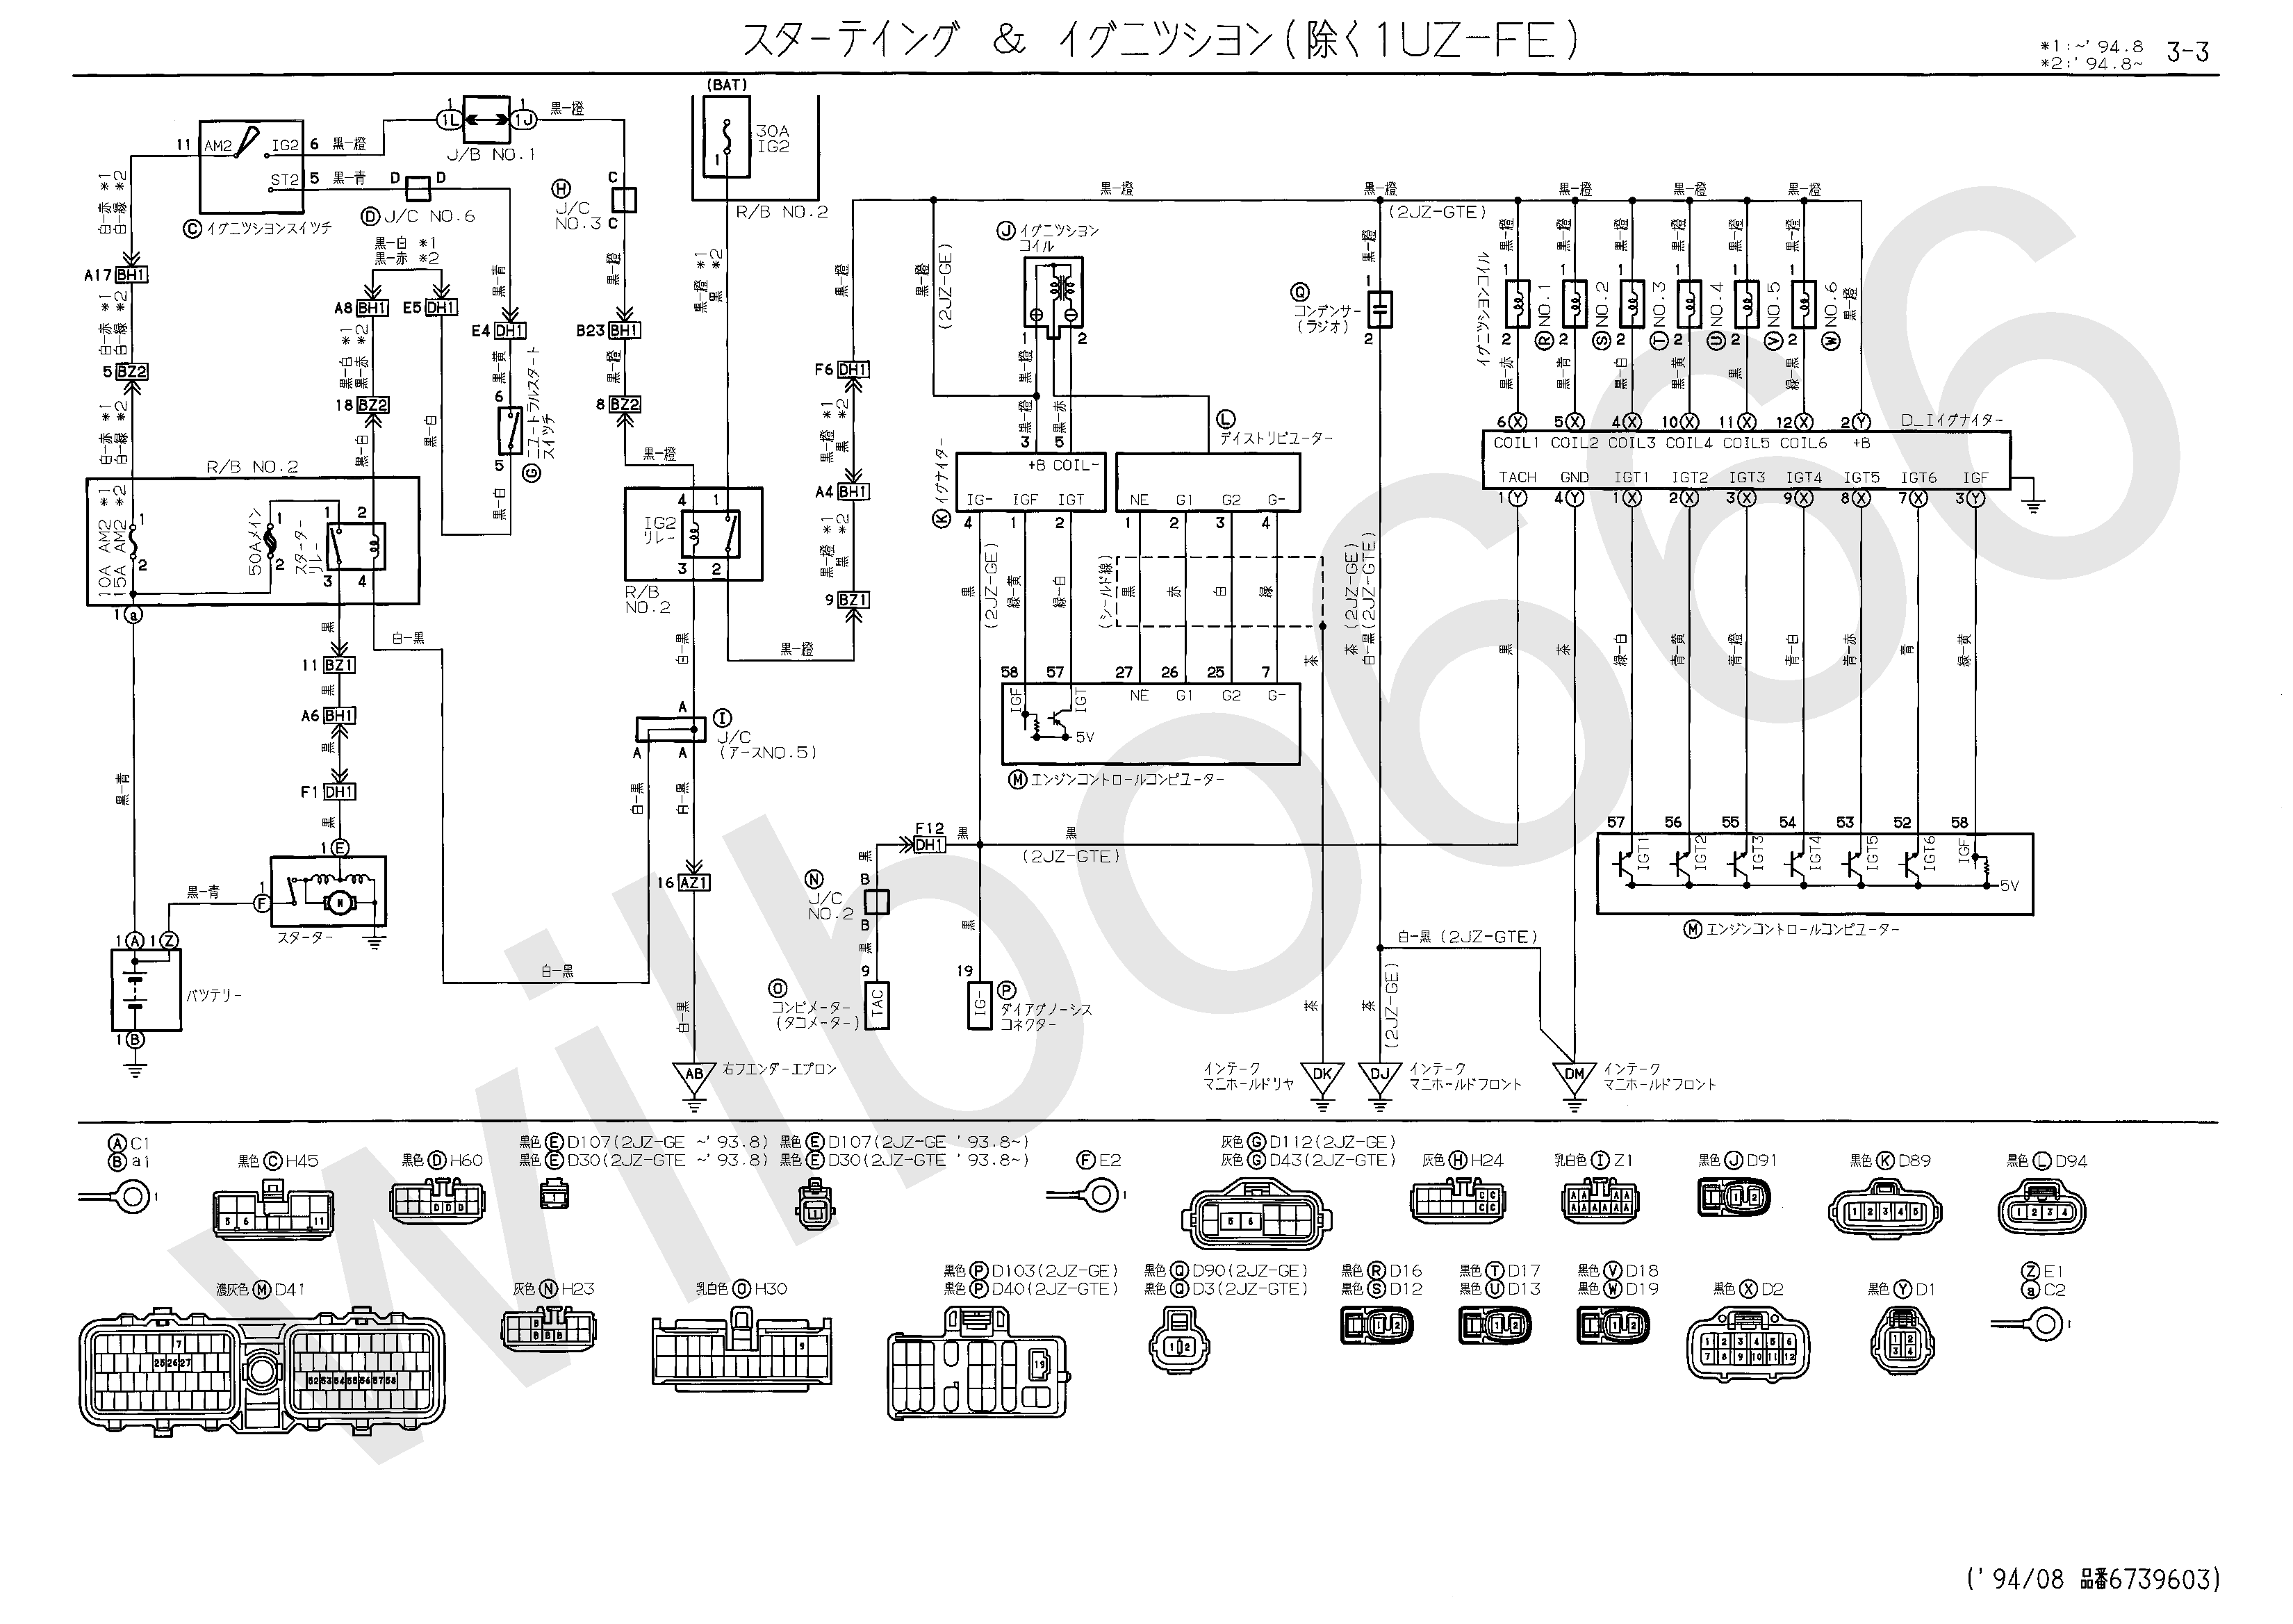 JZS14%23%2C UZS14%23 Electrical Wiring Diagram 6739604 3 3?resize\\\\\\\\\\\\\\\\\\\\\\\\\\\\\\\\\\\\\\\\\\\\\\\\\\\\\\\\\\\\\\\\\\\\\\\\\\\\\\\\\\\\\\\\\\\\\\\\\\\\\\\\\\\\\\\\\\\\\\\\\\\\\\\\\\\\\\\\\\\\\\\\\\\\\\\\\\\\\\\\\\\\\\\\\\\\\\\\\\\\\\\\\\\\\\\\\\\\\\\\\\\\\\\\\\\\\\\\\\\\\\\\\\\\\\\\\\\\\\\\\\\\\\\\\\\\\\\\\\\\\\\\\\\\\\\\\\\\\\\\\\\\\\\\\\\\\\\\\\\\\\\\\\\\\\\\\\\\\\\\\\\\\\\\\\\\\\\\\\\\\\\\\\\\\\\\\\\\\\\\\\\\\\\\\\\\\\\\\\\\\\\\\\\\\\\\\\\\\\\\\\\\\\\\\\\\\\\\\\\\\\\\\\\\\\\\\\\\\\\\\\\\\\\\\=665%2C471 rb26 wiring diagram rb26 wiring harness diagram \u2022 wiring diagrams  at nearapp.co